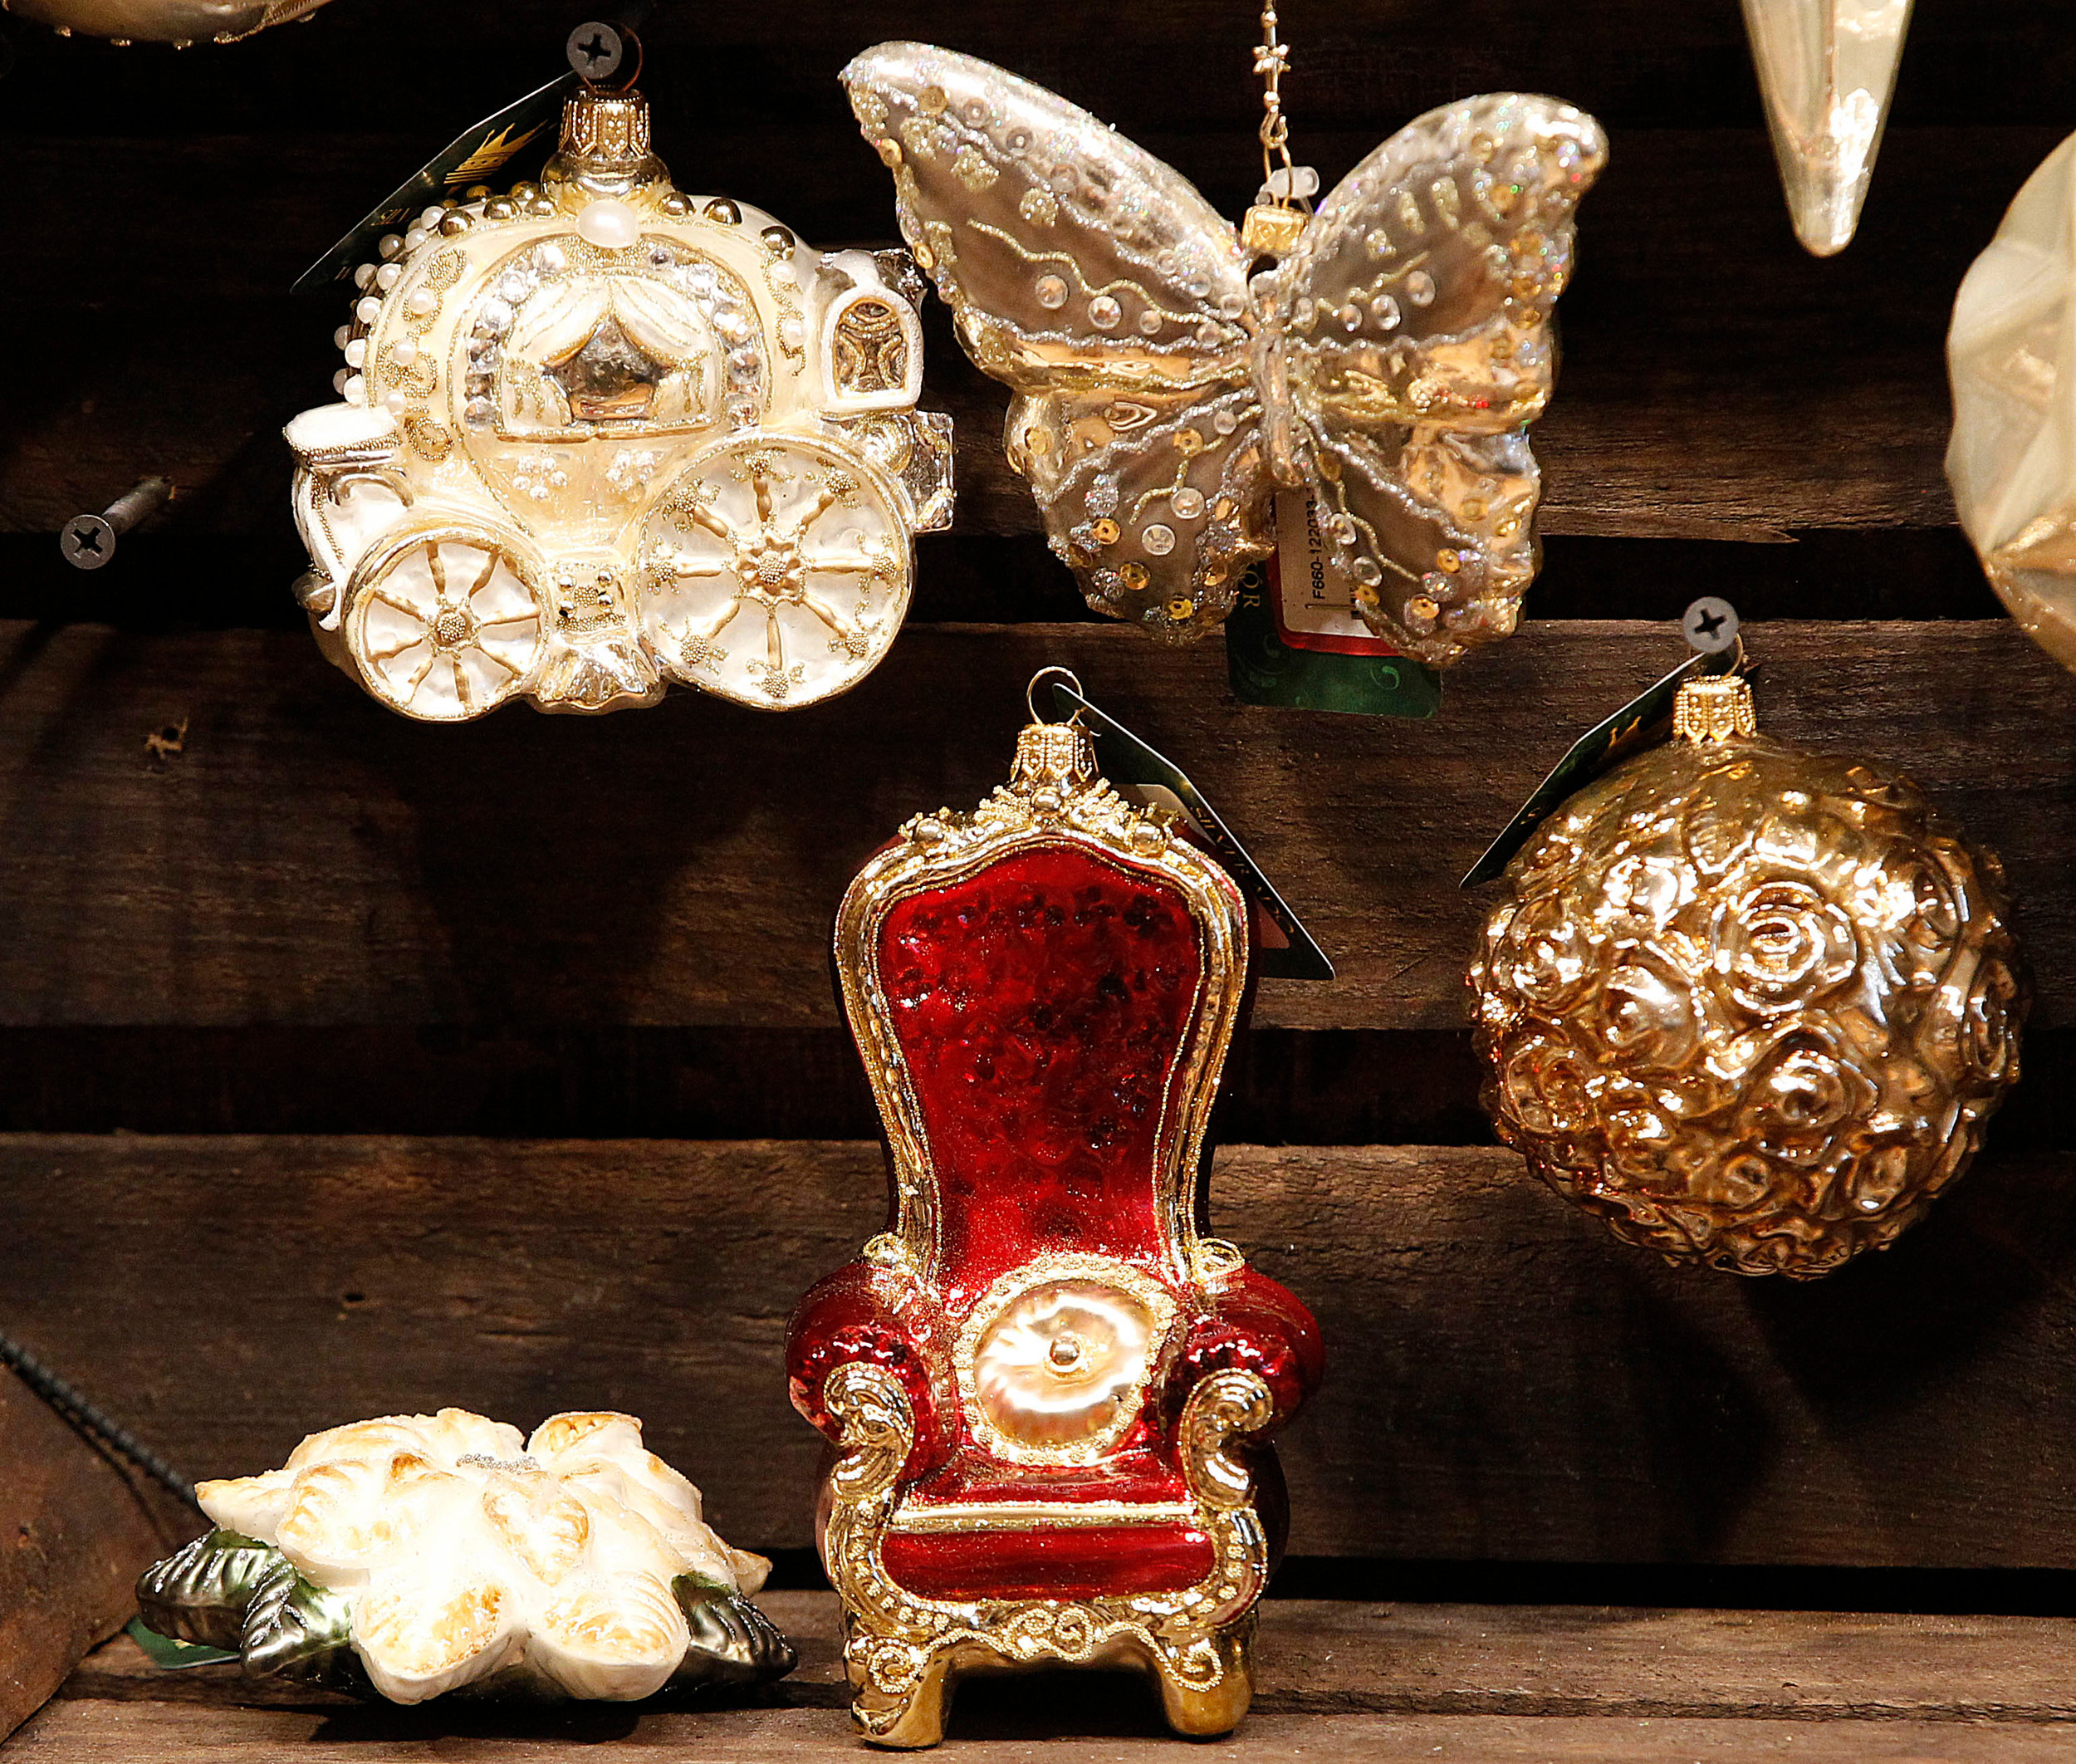 designs of blown glass christmas tree decorations are on display at the silverado manufacturer in